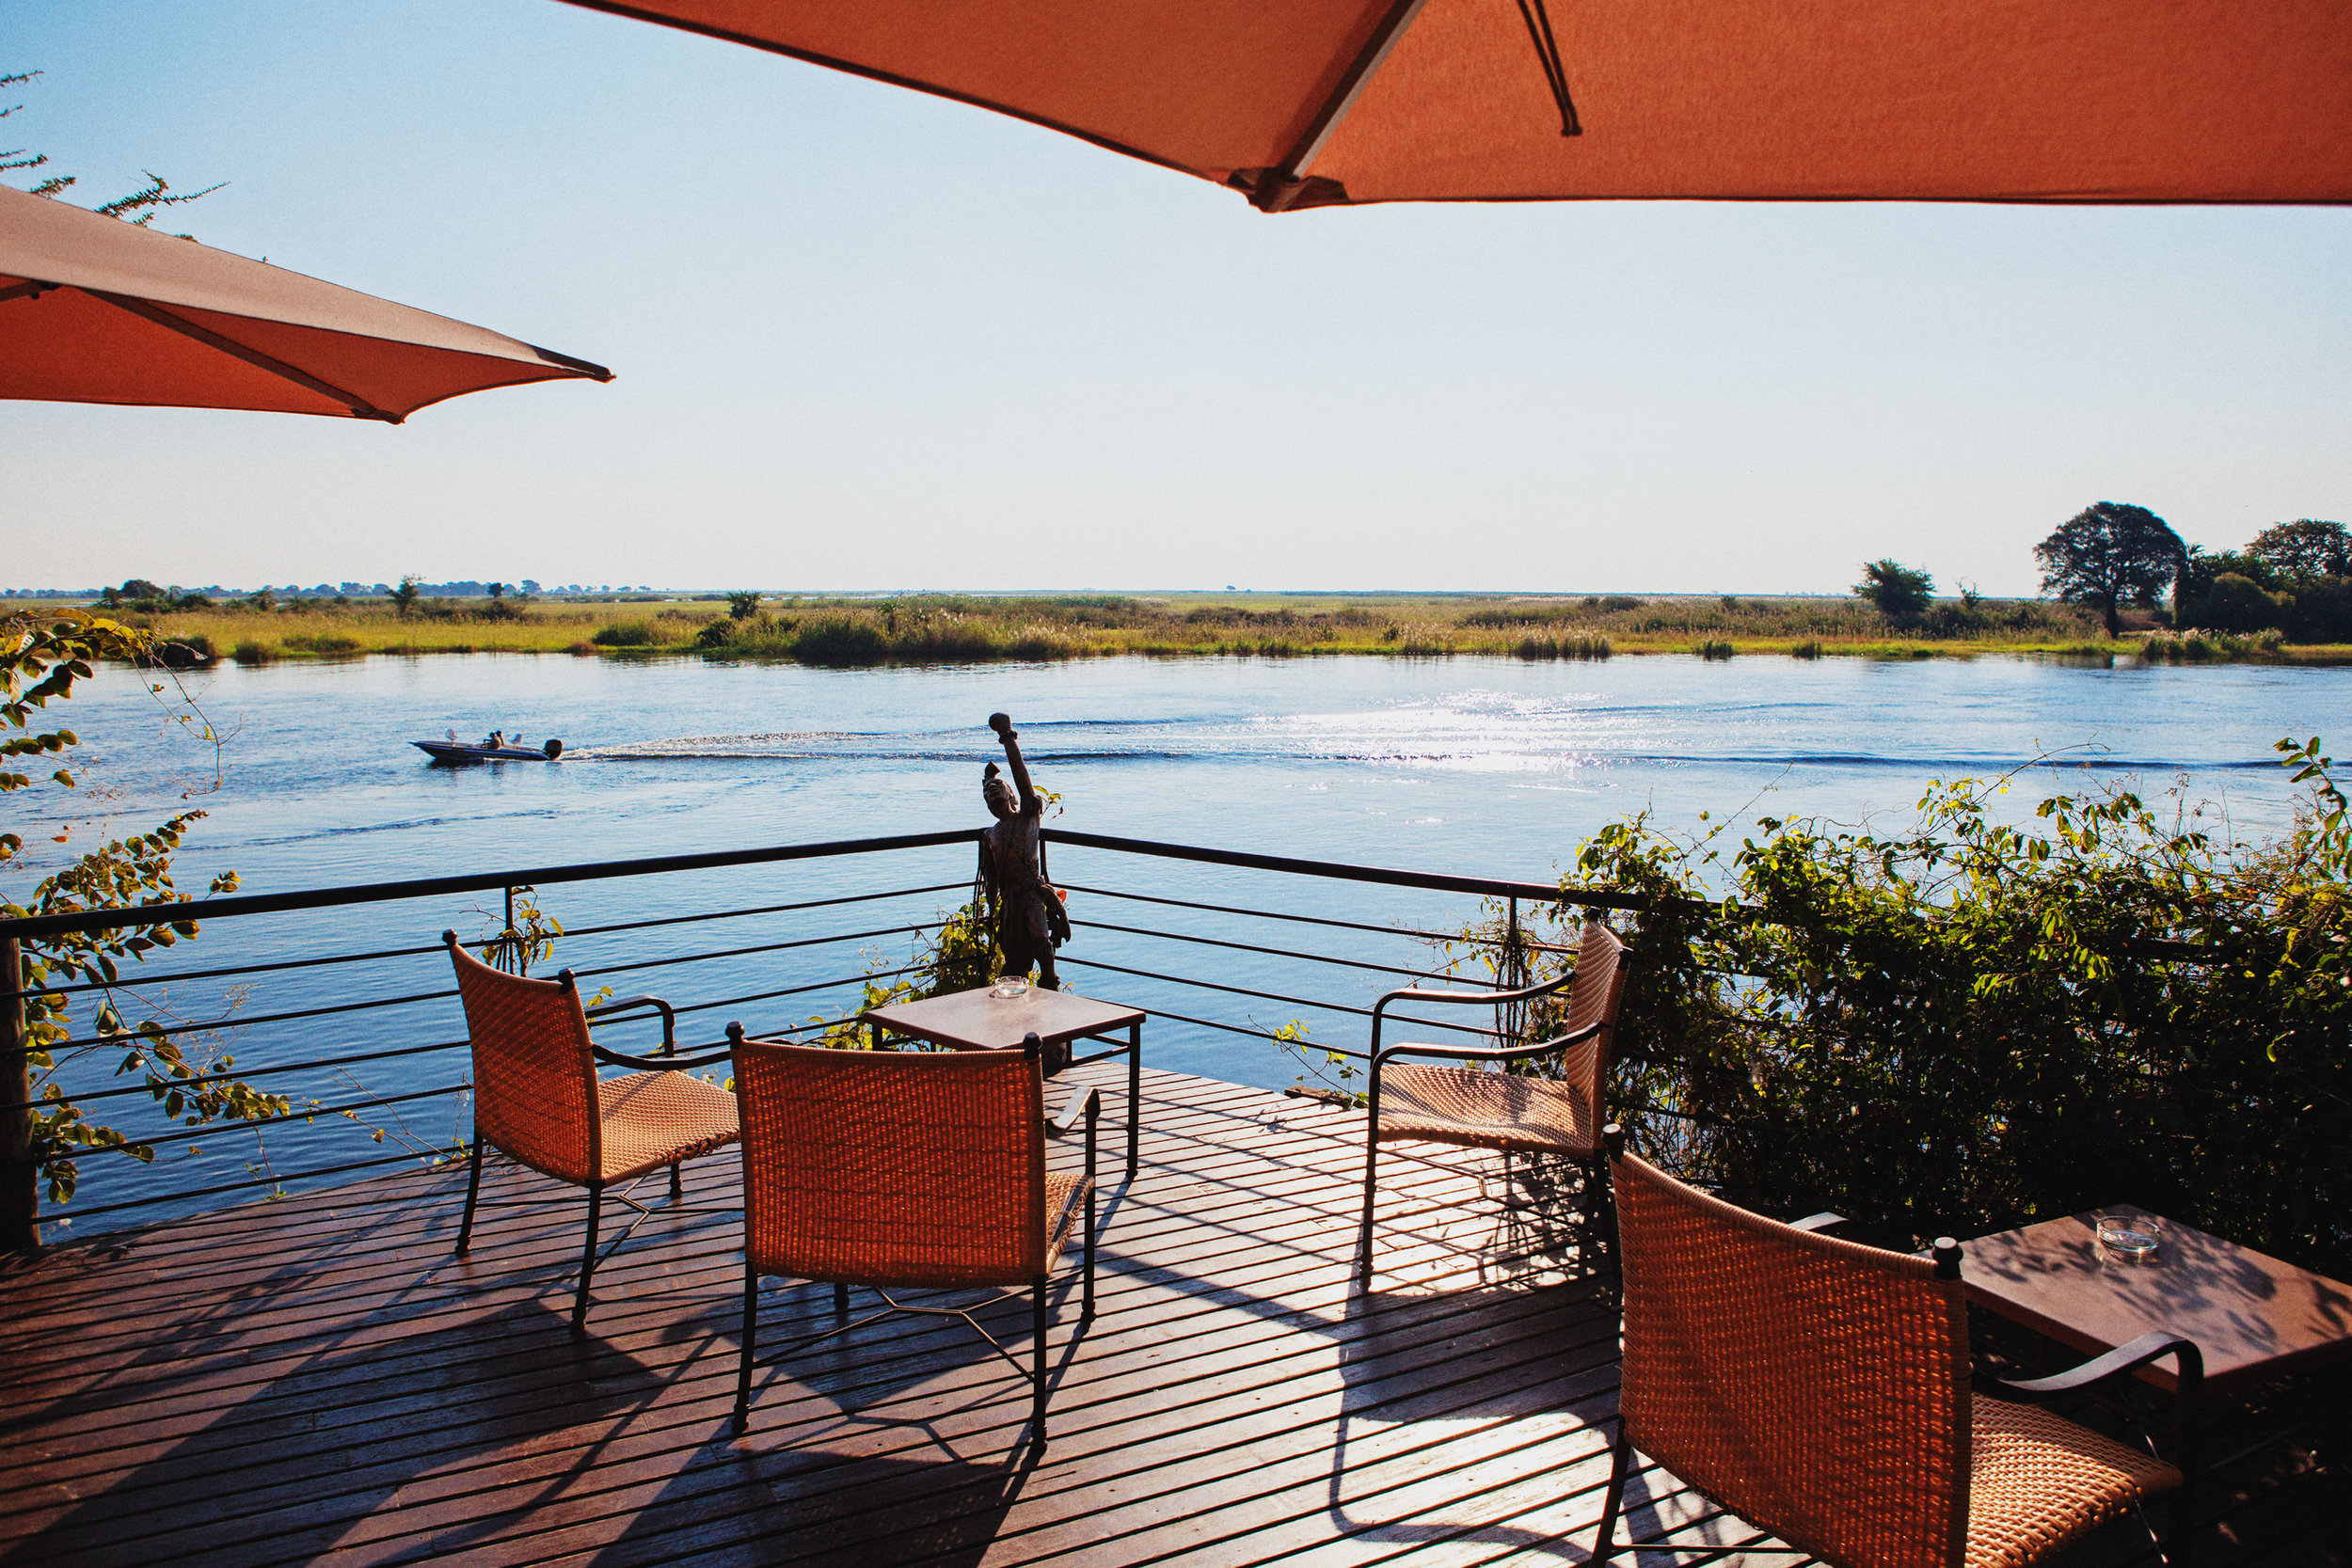 NATURAL BORDER  ::  The patio furniture sits firmly in Botswana, while the opposite grassy riverbank grows in Namibia.